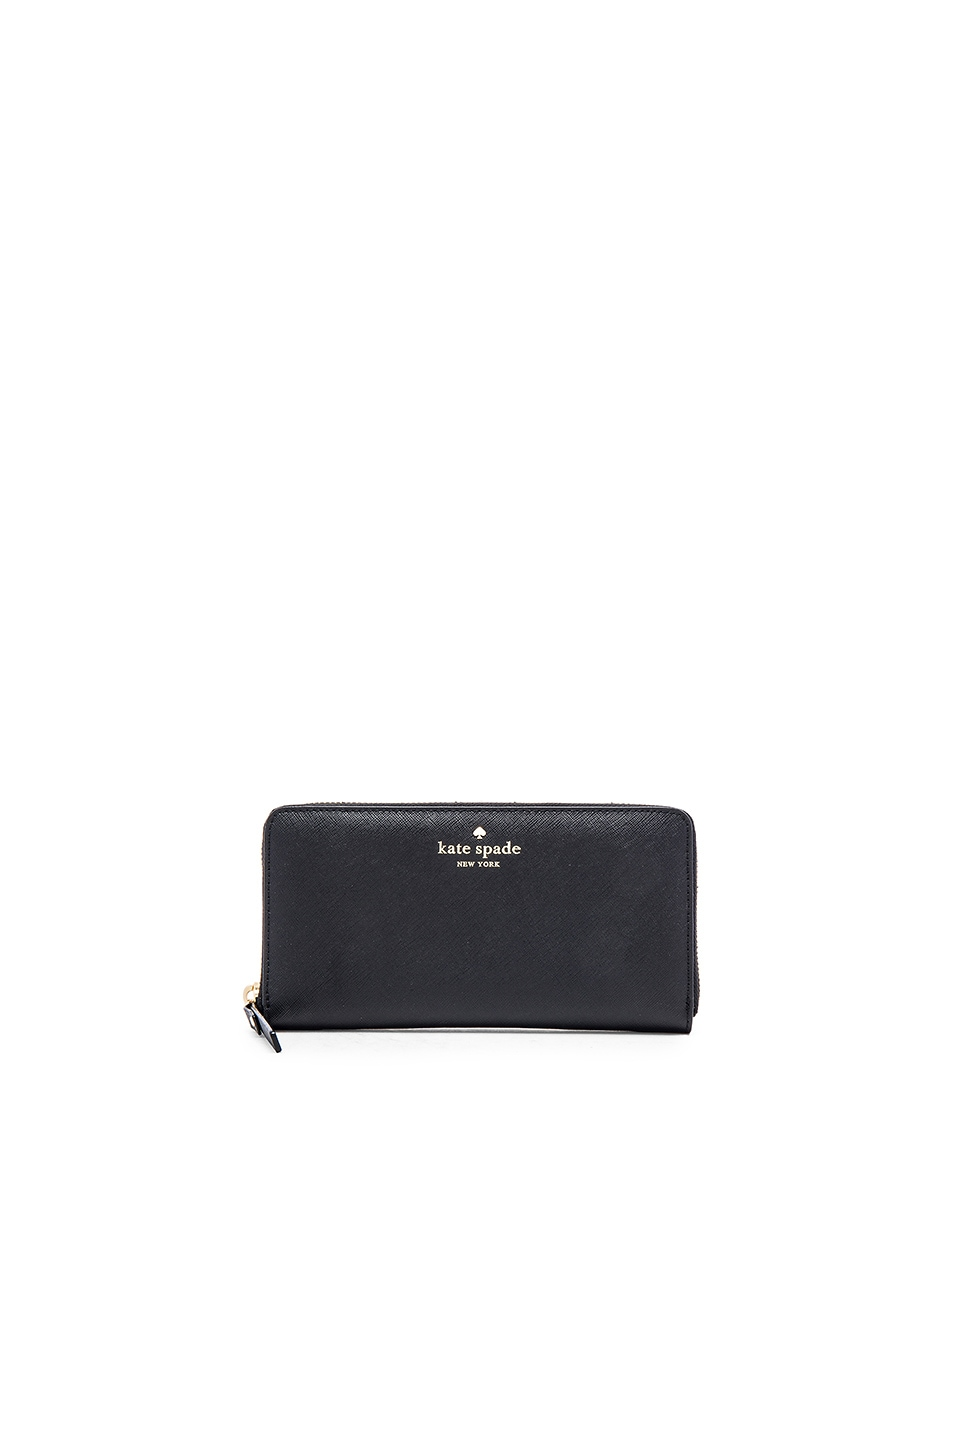 kate spade new york PORTEFEUILLE LACEY